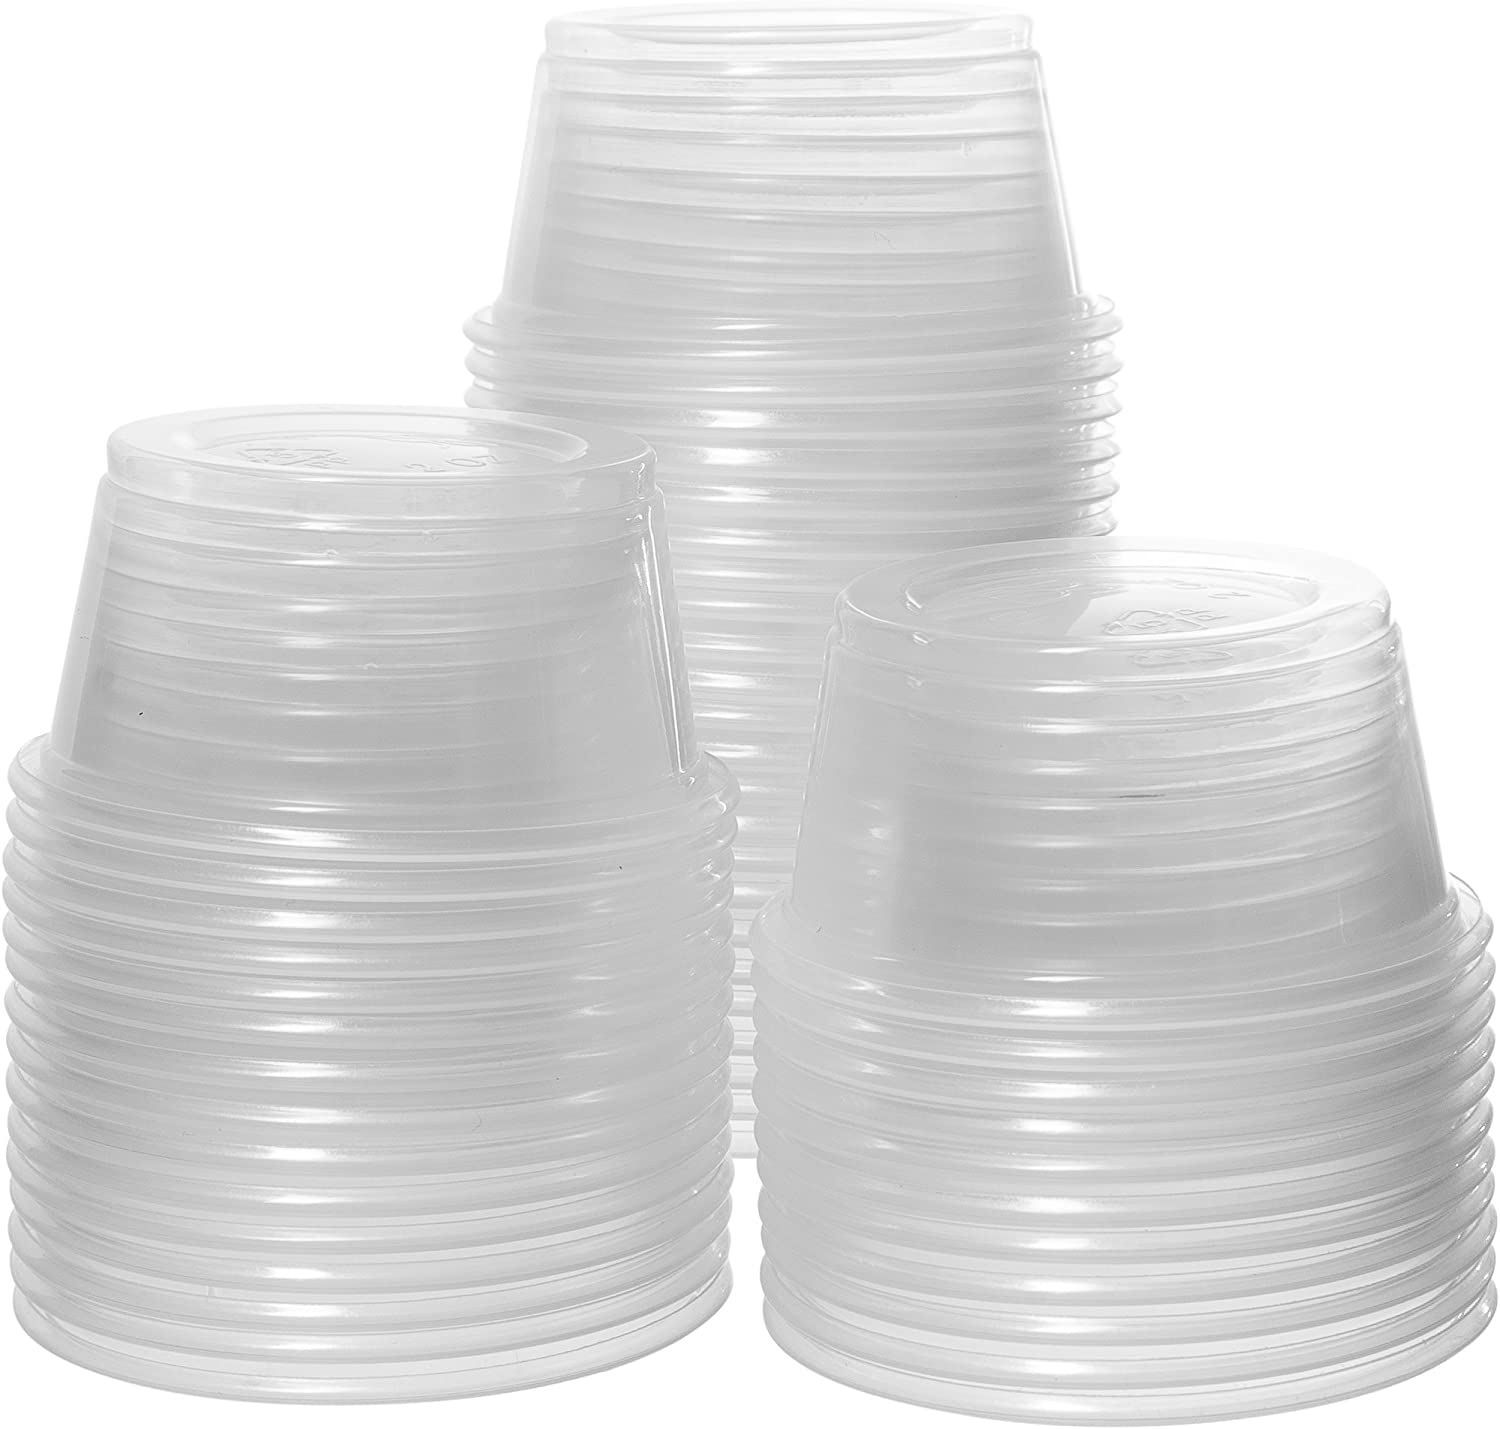 Crystalware, Disposable 2oz. Plastic Portion Cups (No Lids) Condiment Cup, Jello Shot, Soufflé Portion, Sampling Cup, 100 Cups Clear (100 Cups)